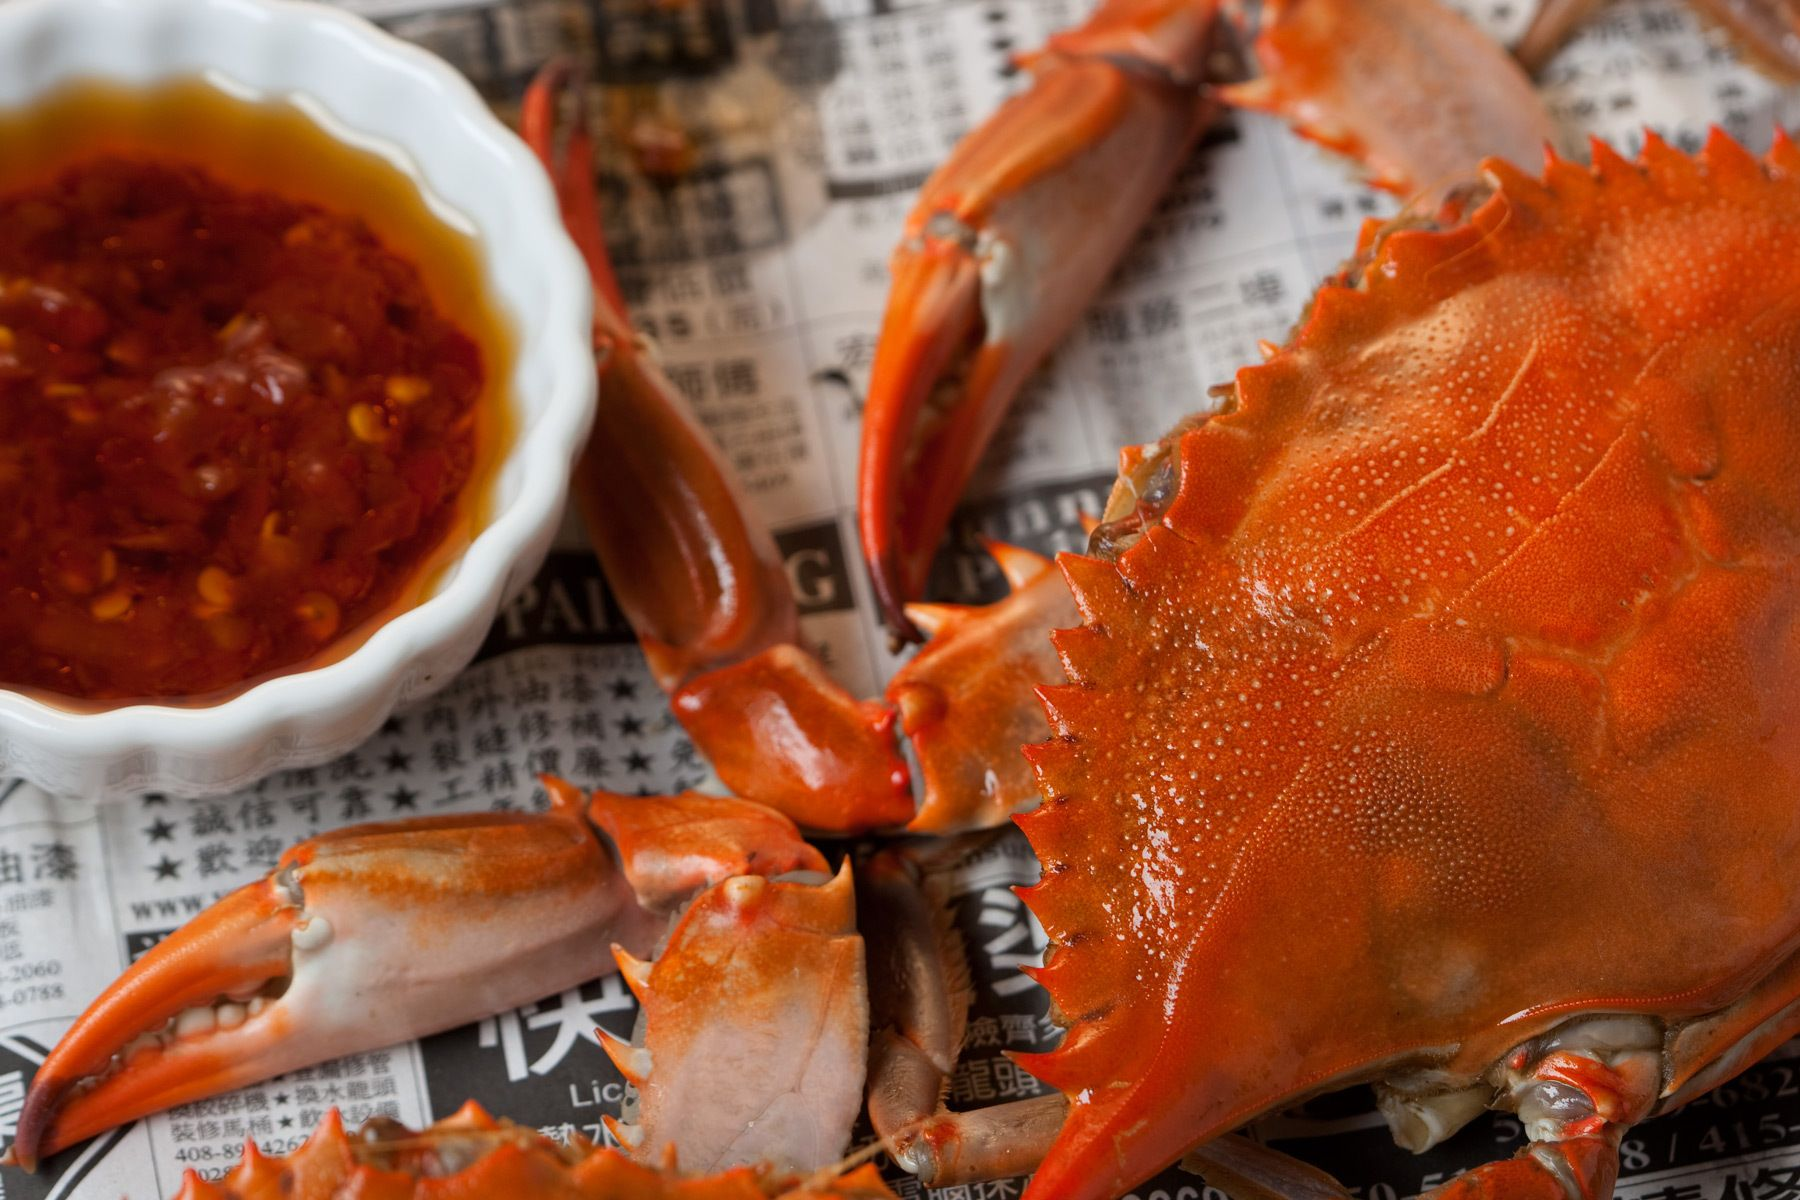 dungeness crab with spicy sauce